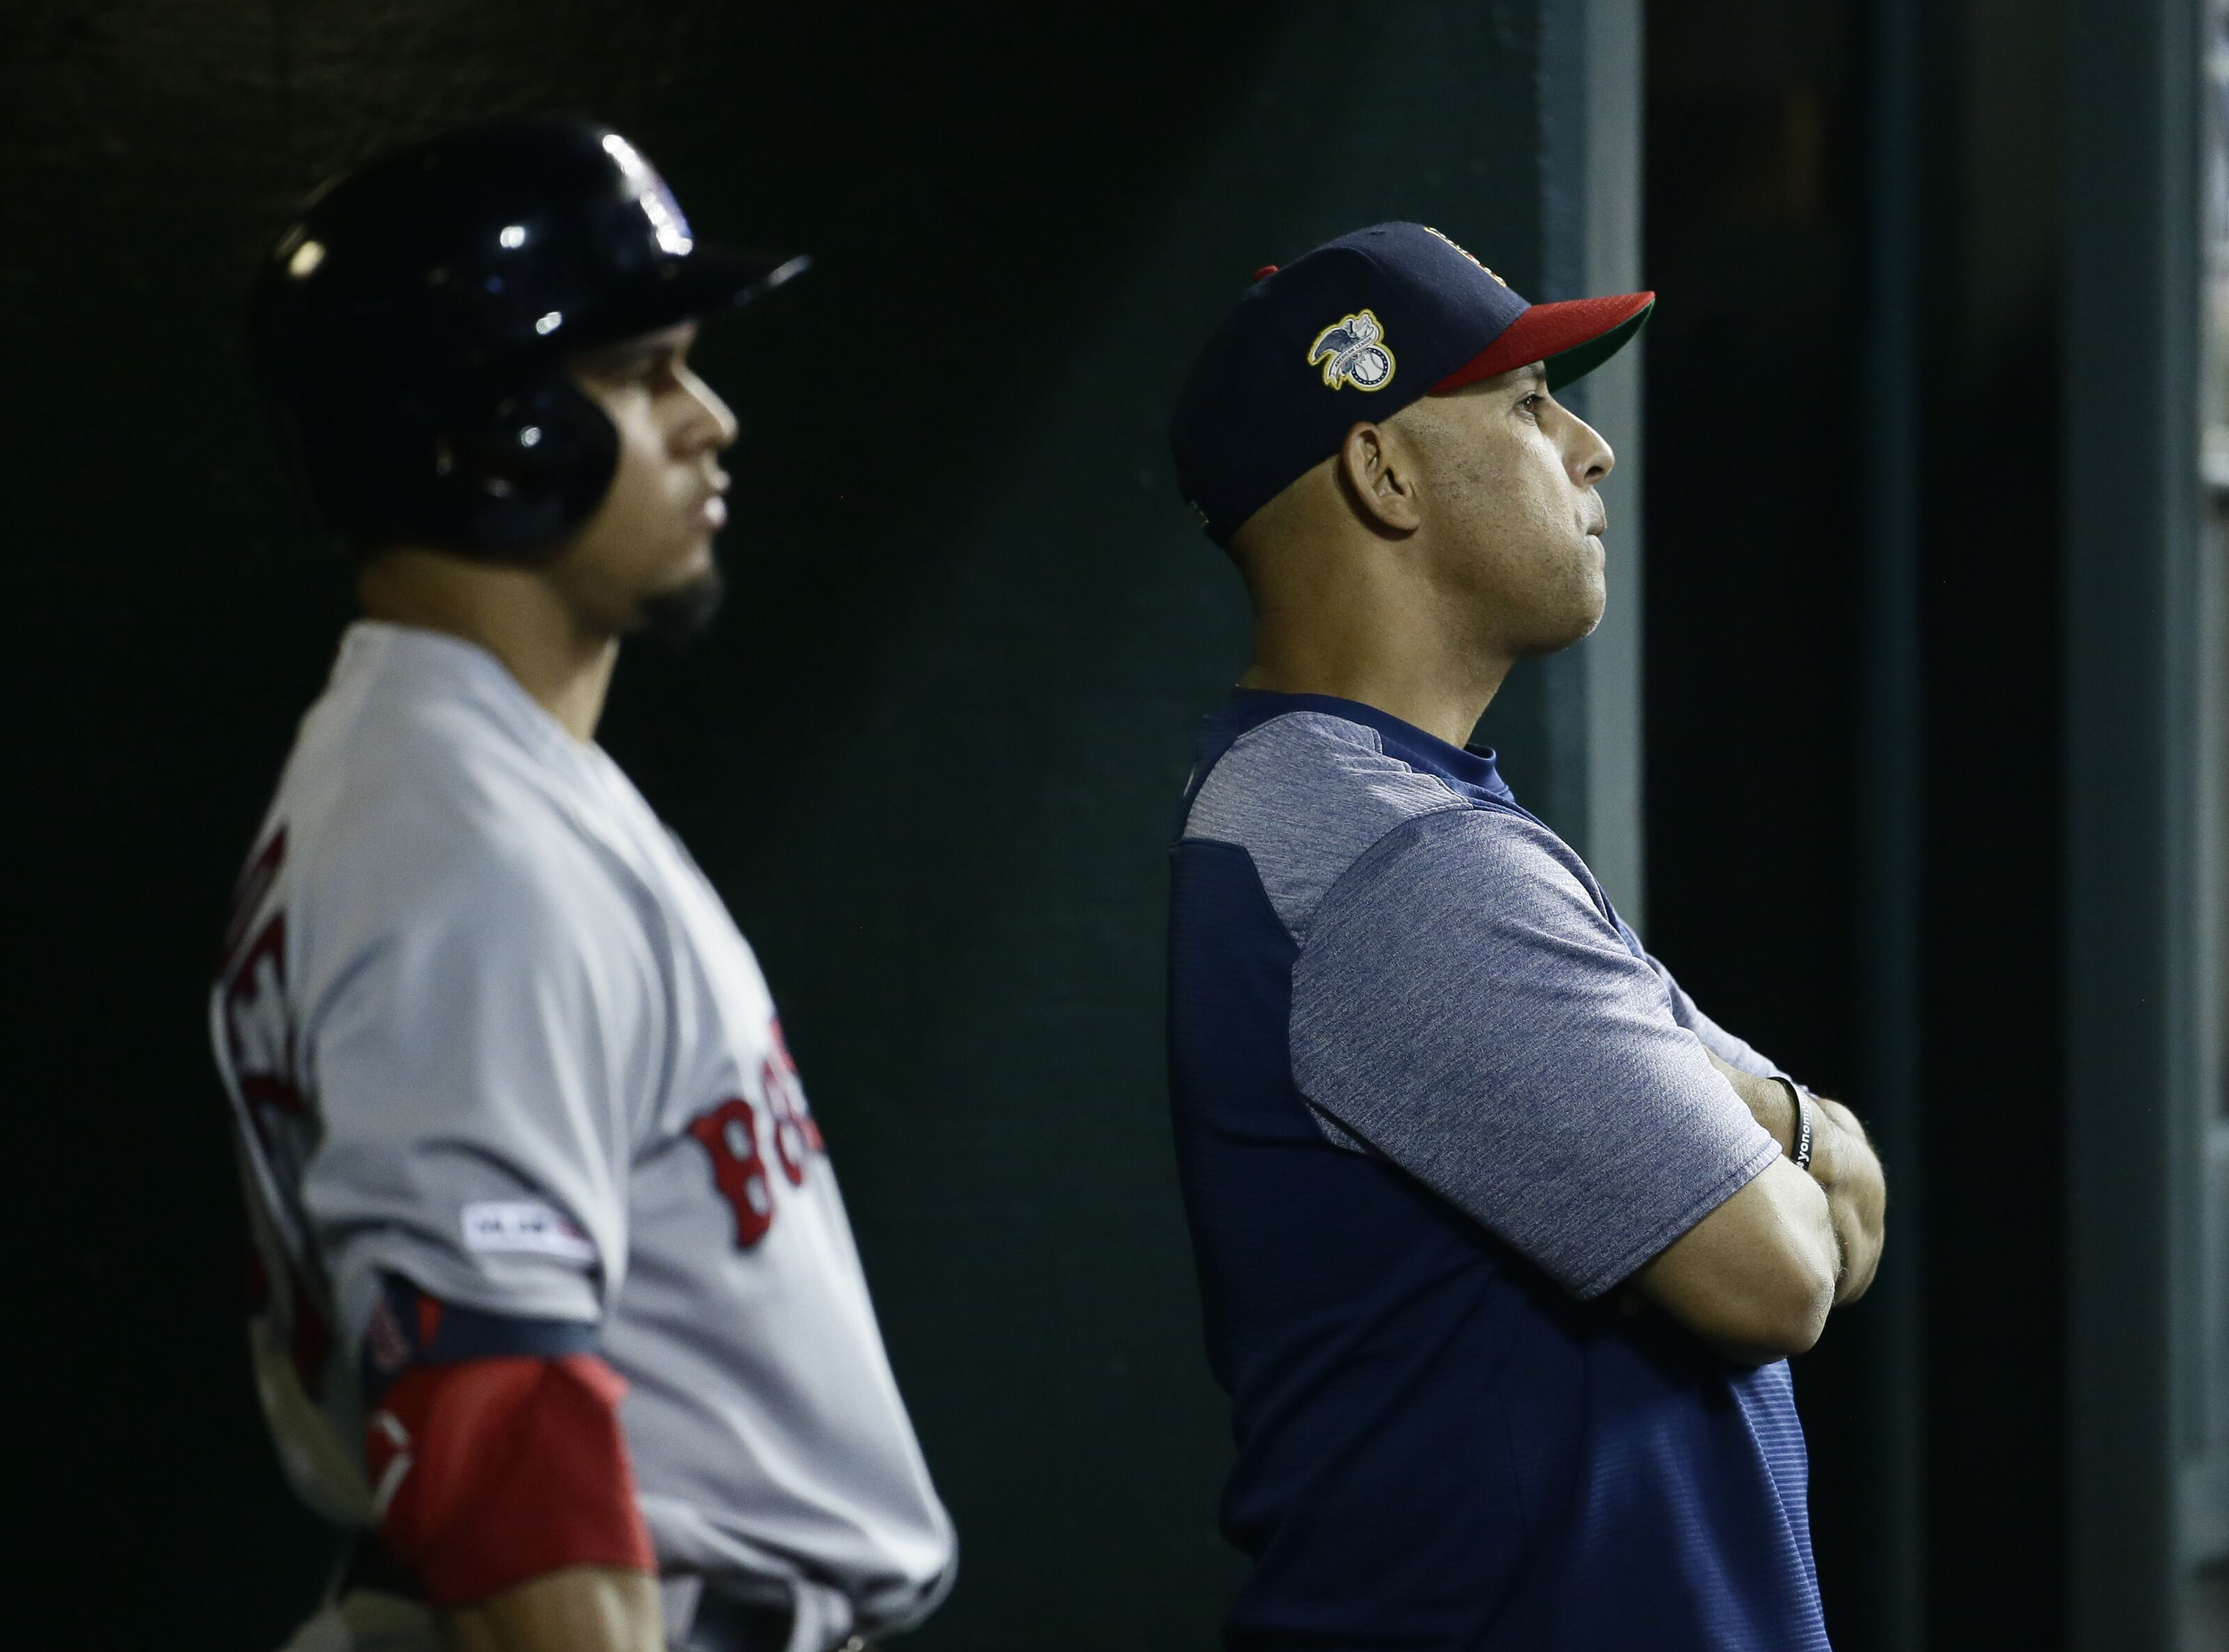 Another loss leaves Red Sox Nation curious about the team's decisions